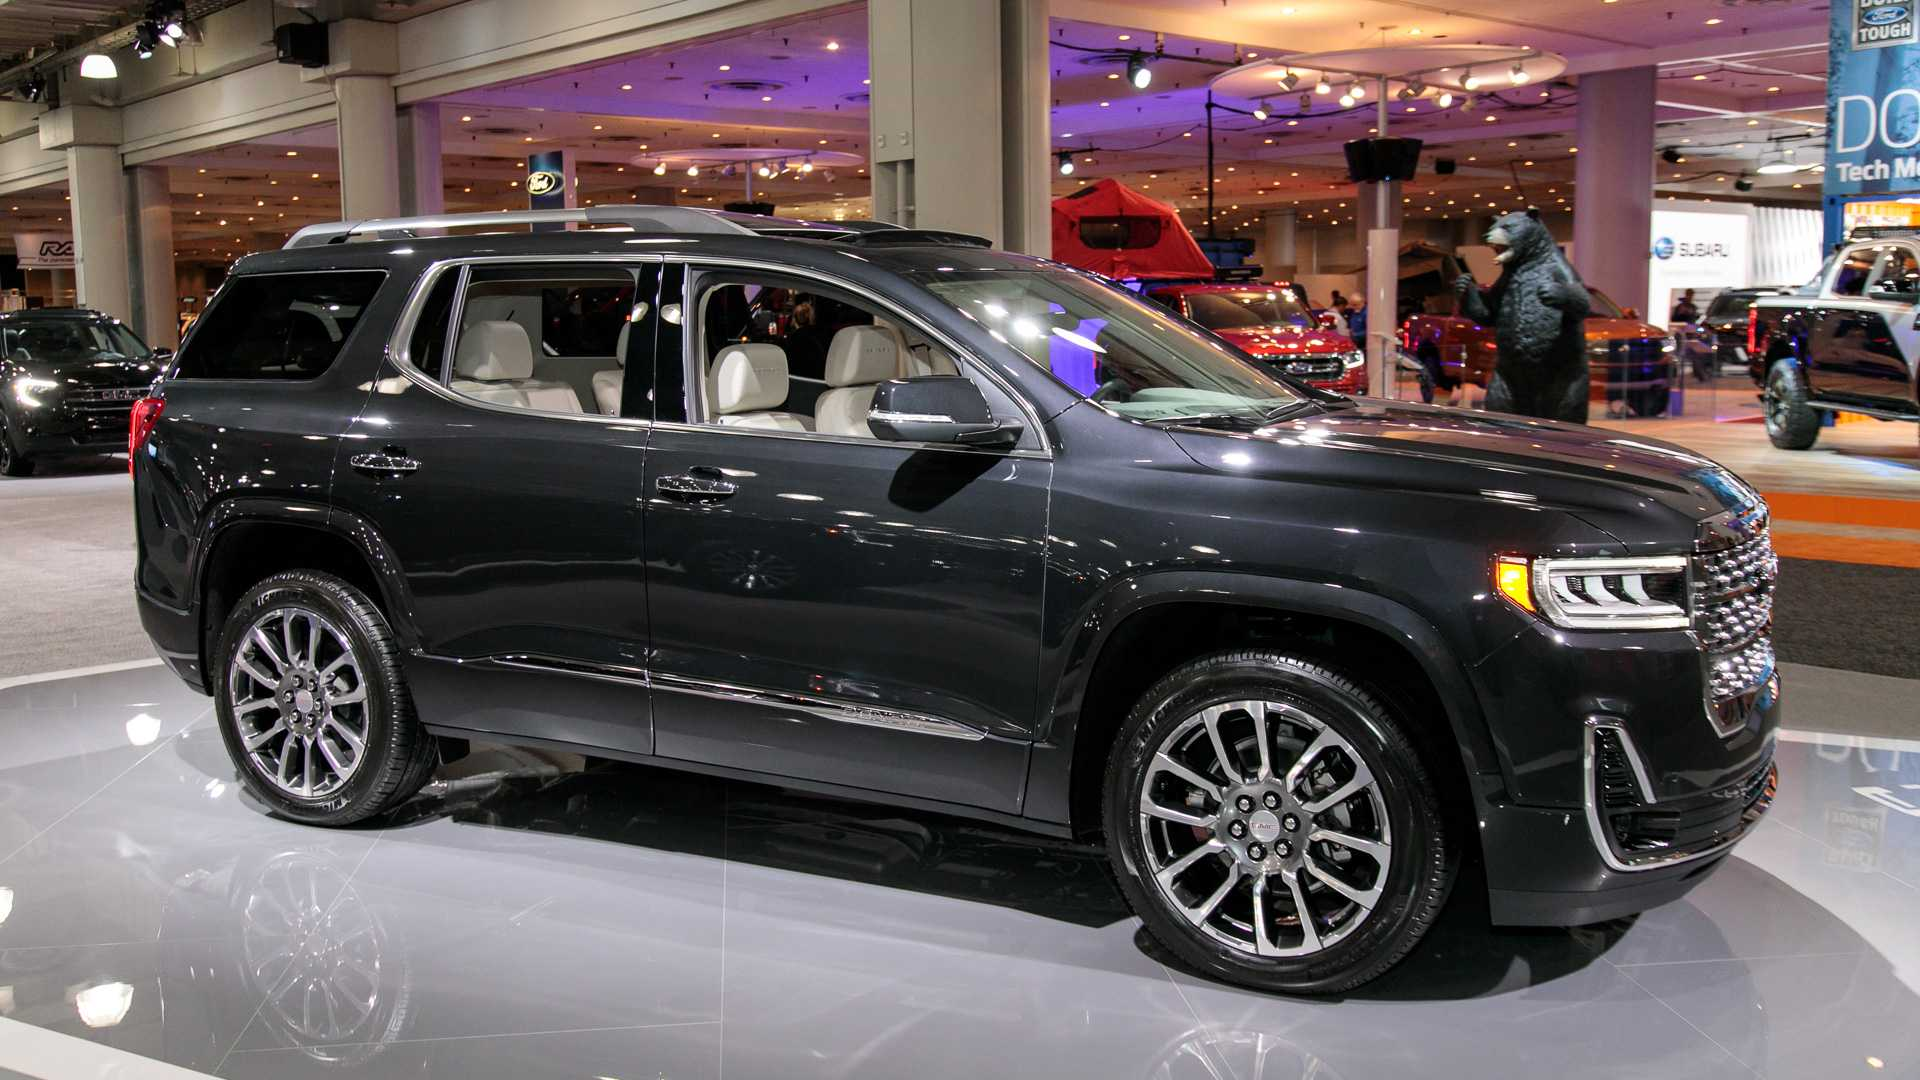 2020 Gmc Acadia Mpg Car Review Car Review